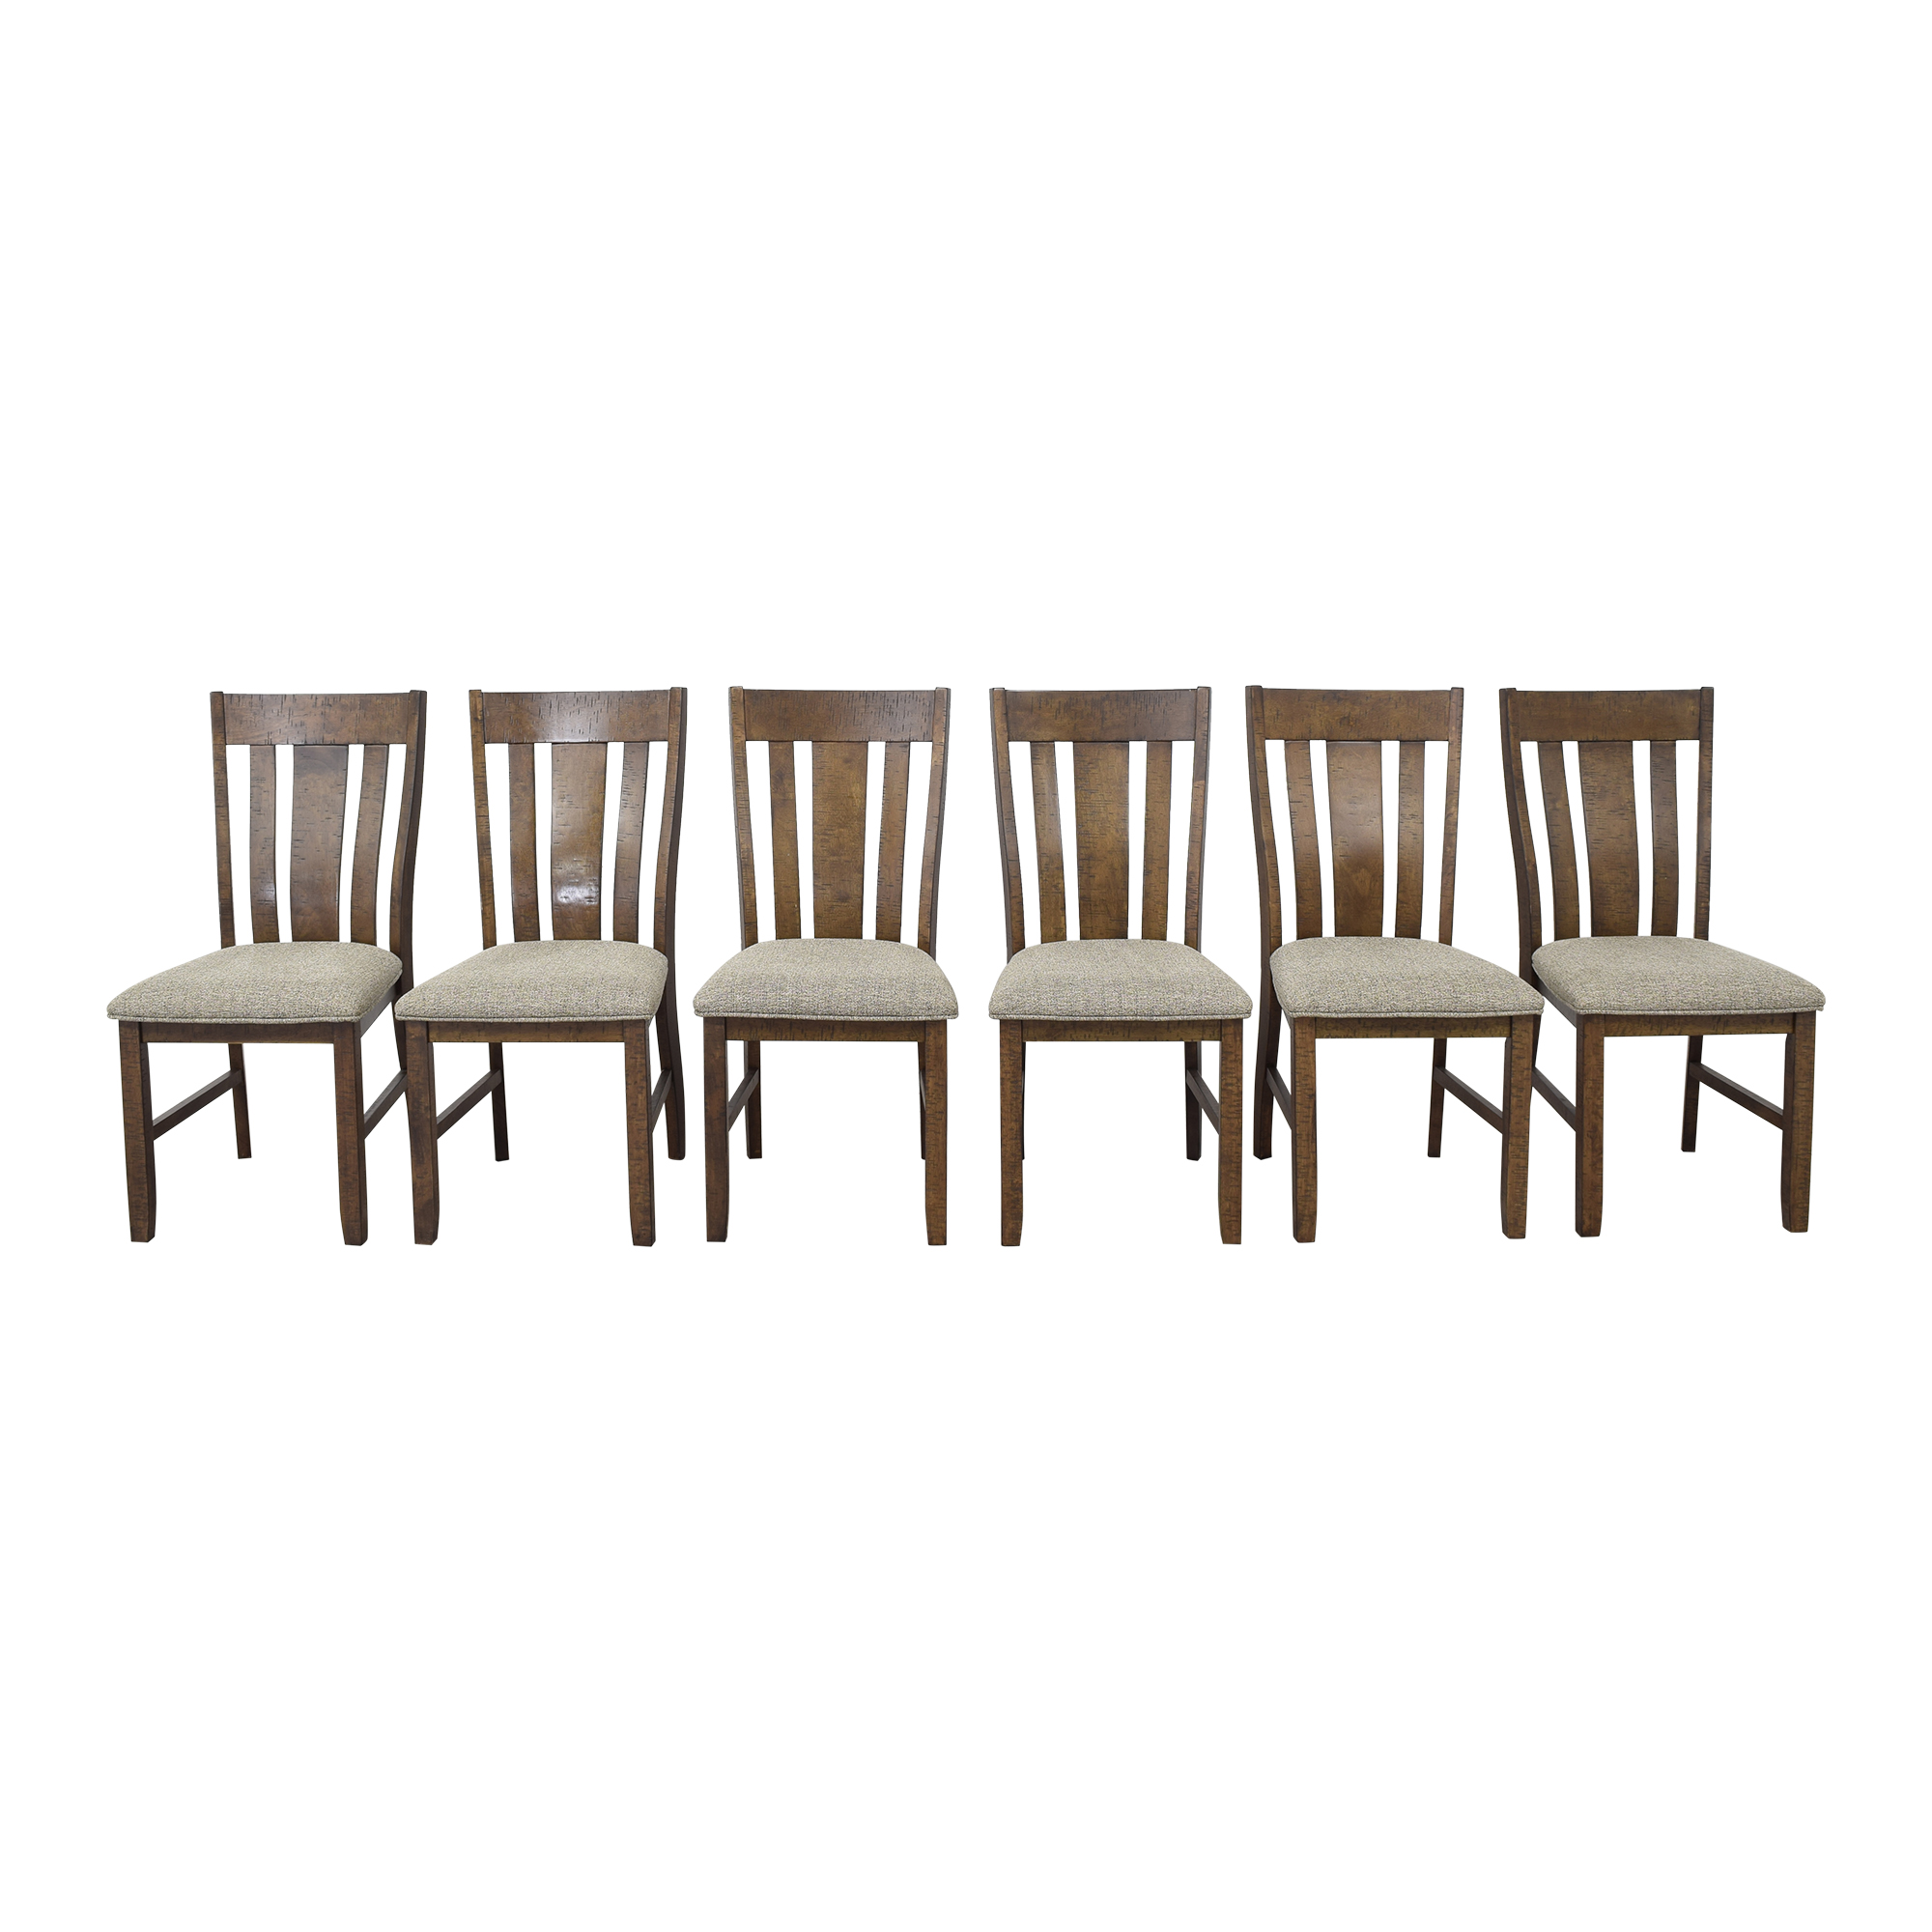 Lane Home Furnishings Lane Home Furnishings Everett Dining Chairs nyc